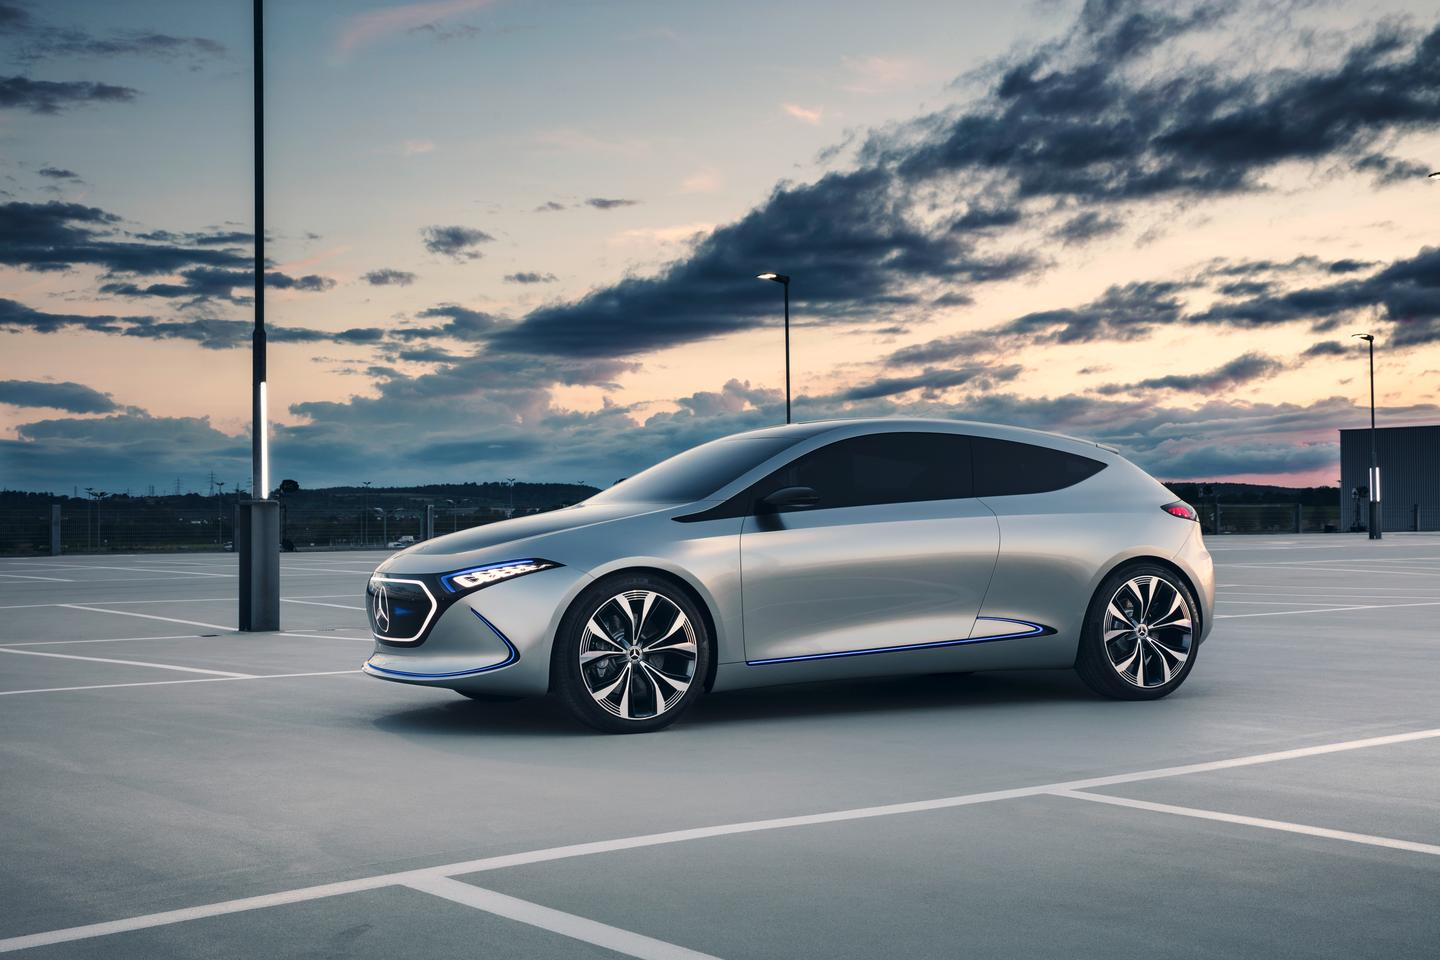 Following on the Generation EQconcept shown last year, the Mercedes-Benz Concept EQA continues with flowing lines, a lack of sharp edges, and a lot of lighting